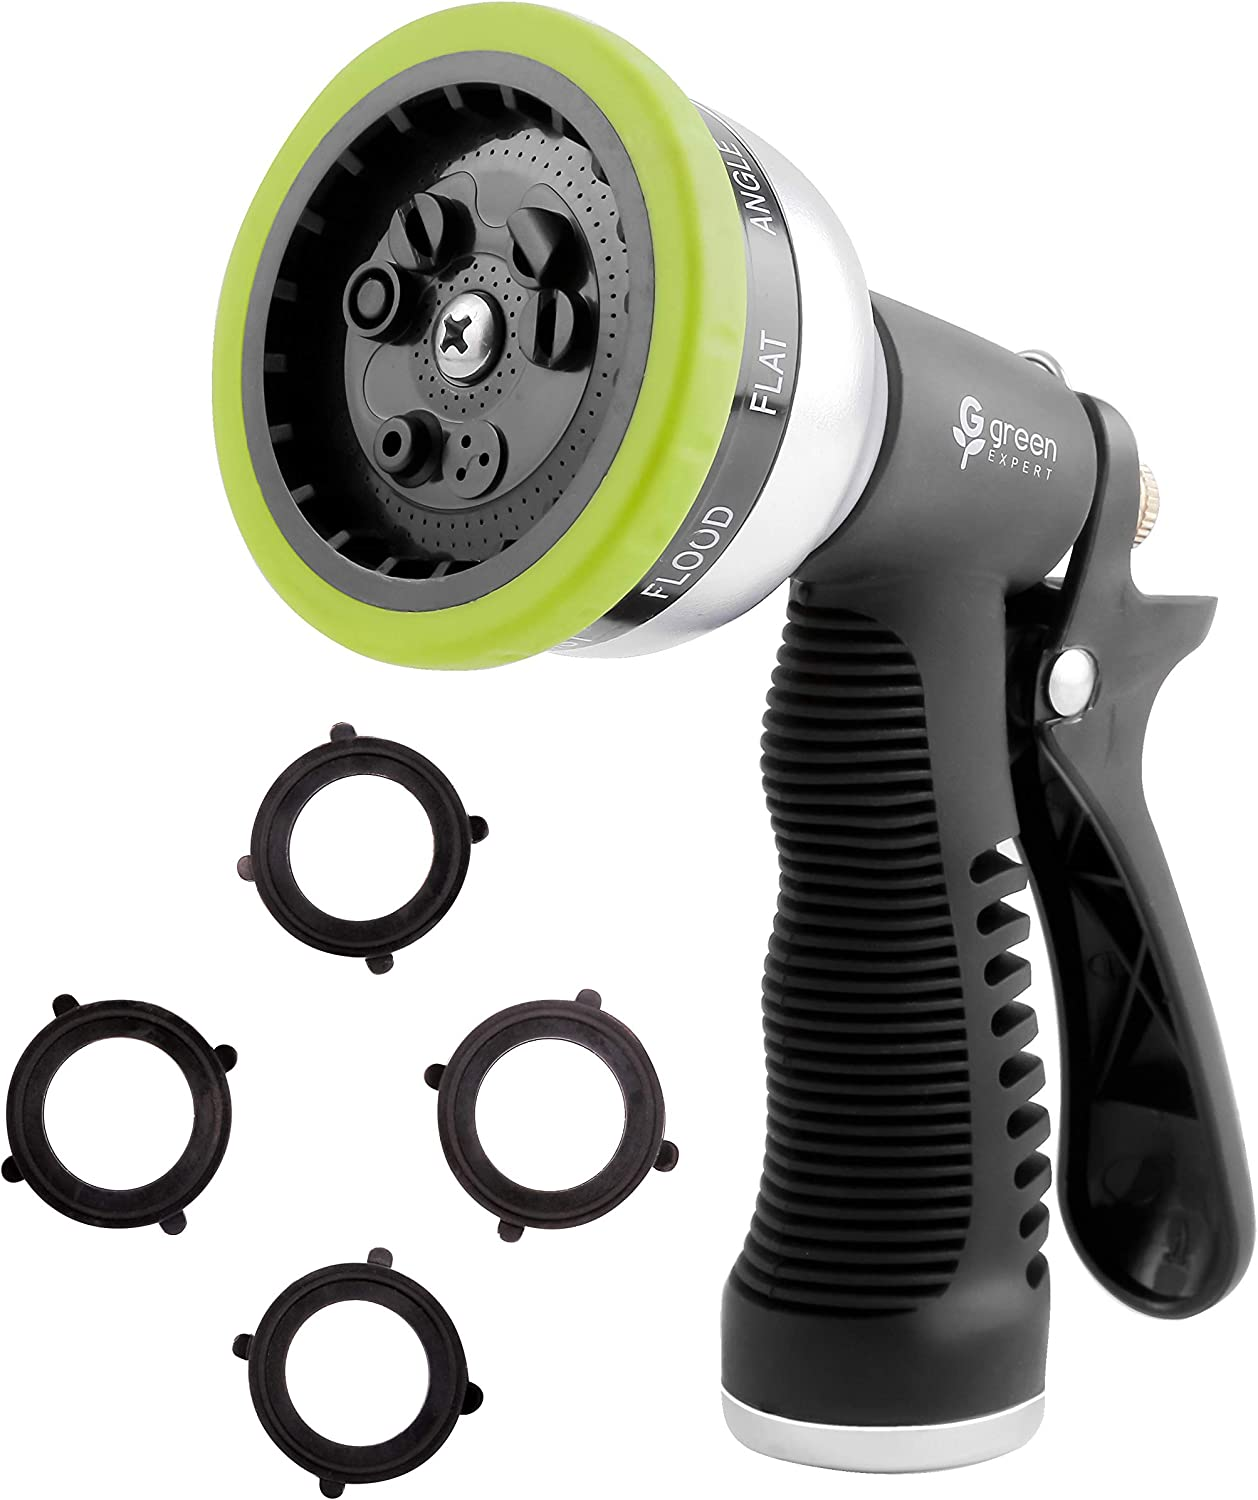 Green Expert High Pressure Garden Hose Nozzle 9 Adjustable Spray Patterns Heavy-Duty Metal Sprayer with Thermoplastic Housing for Car Wash Pets Shower Plants Watering Home Cleaning, 479903